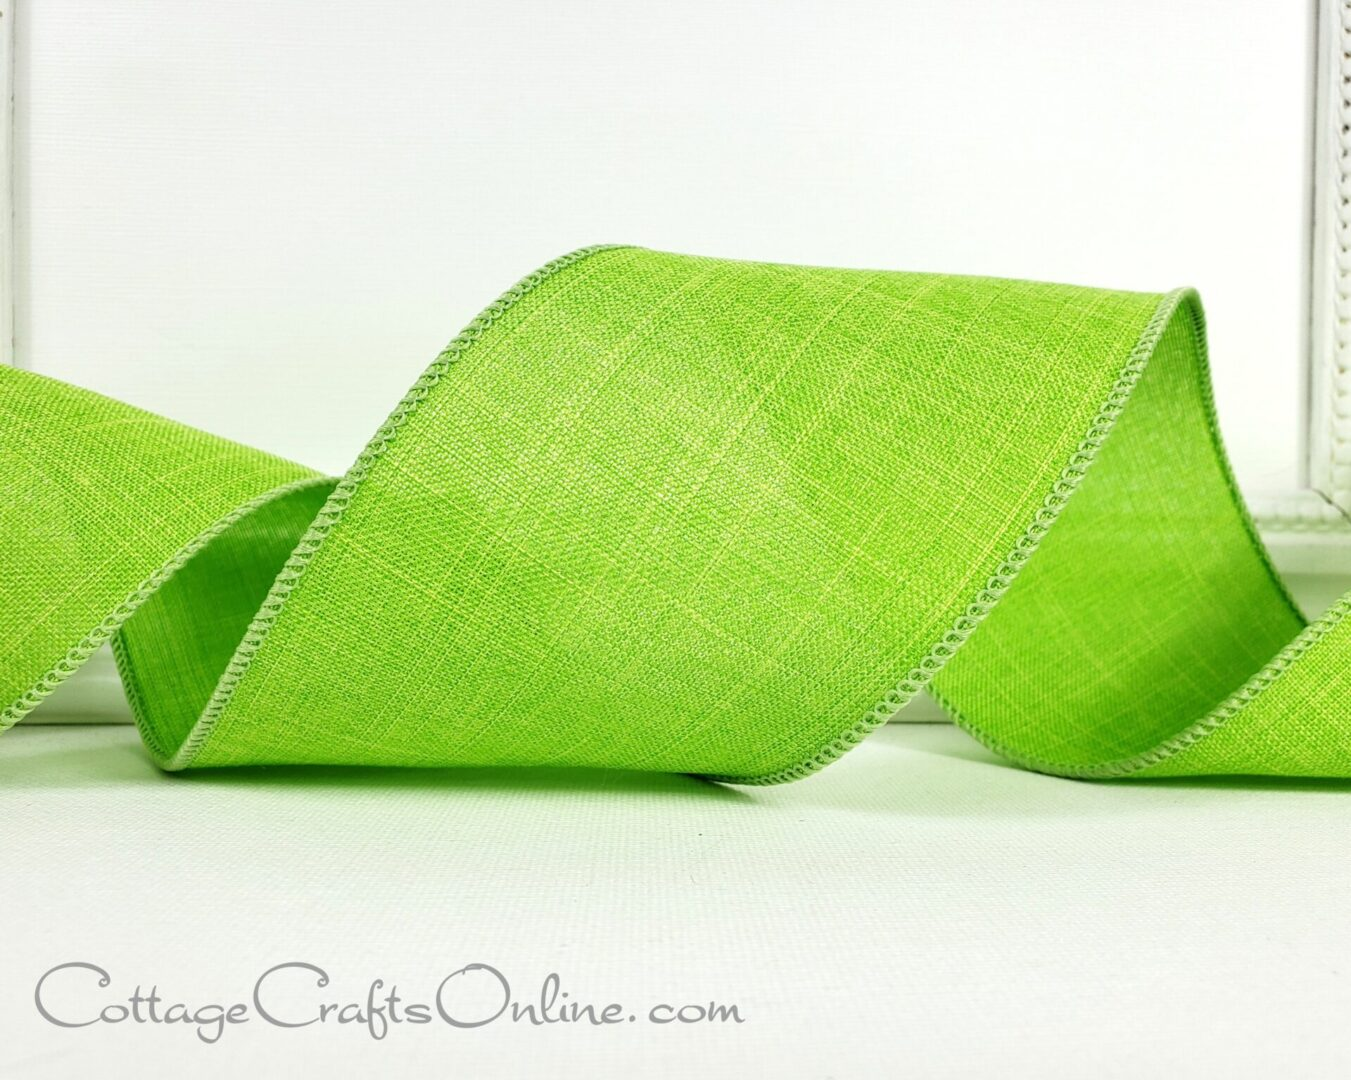 green divinely royal citrus ol 3 inch-025